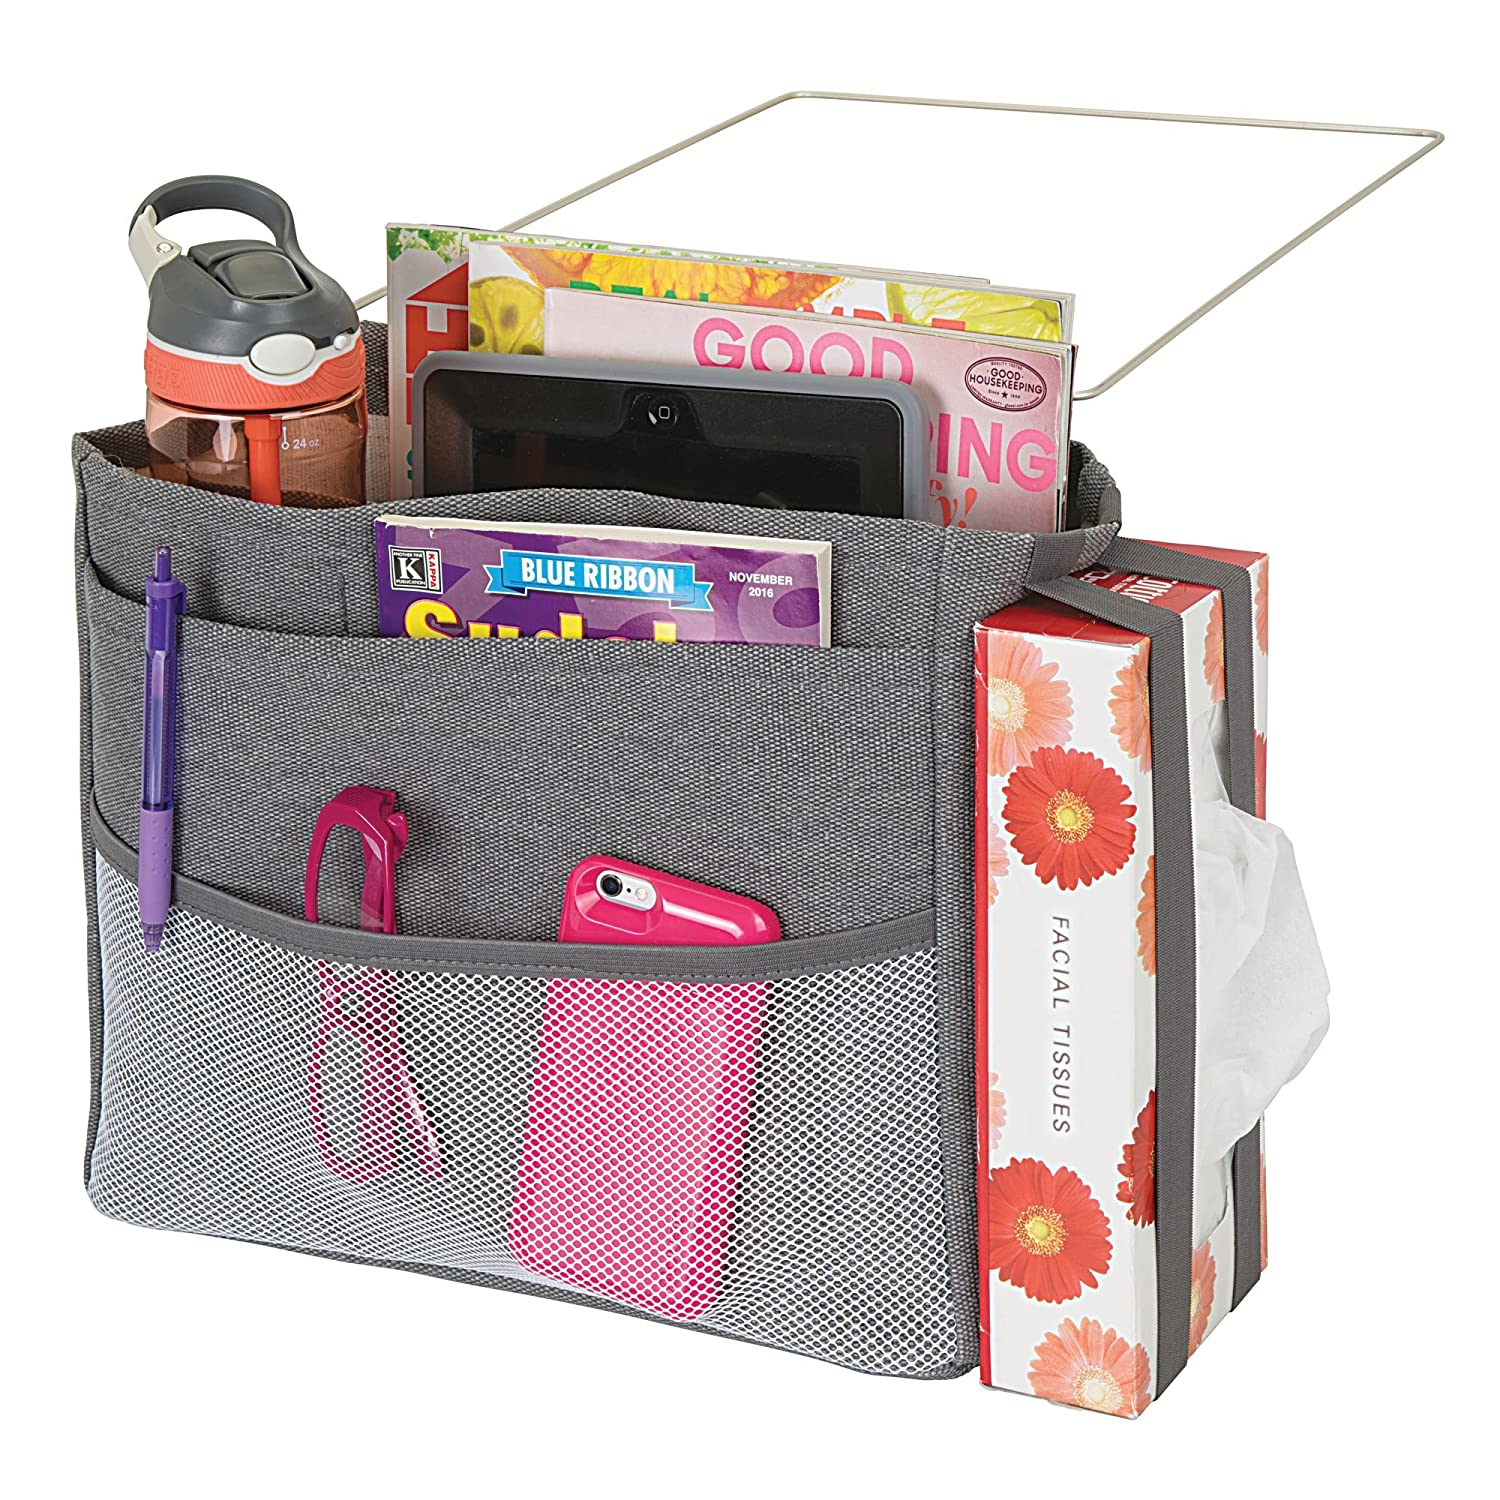 mDesign Bedside Hanging Storage Organizer Caddy Pocket - 4 Deep Pockets, 1 Mesh Front Pocket, Elastic Side Straps Tissue Boxes - Heavy Weight Cotton Canvas, Metal Wire Insert - Charcoal Gray/Satin MetroDecor